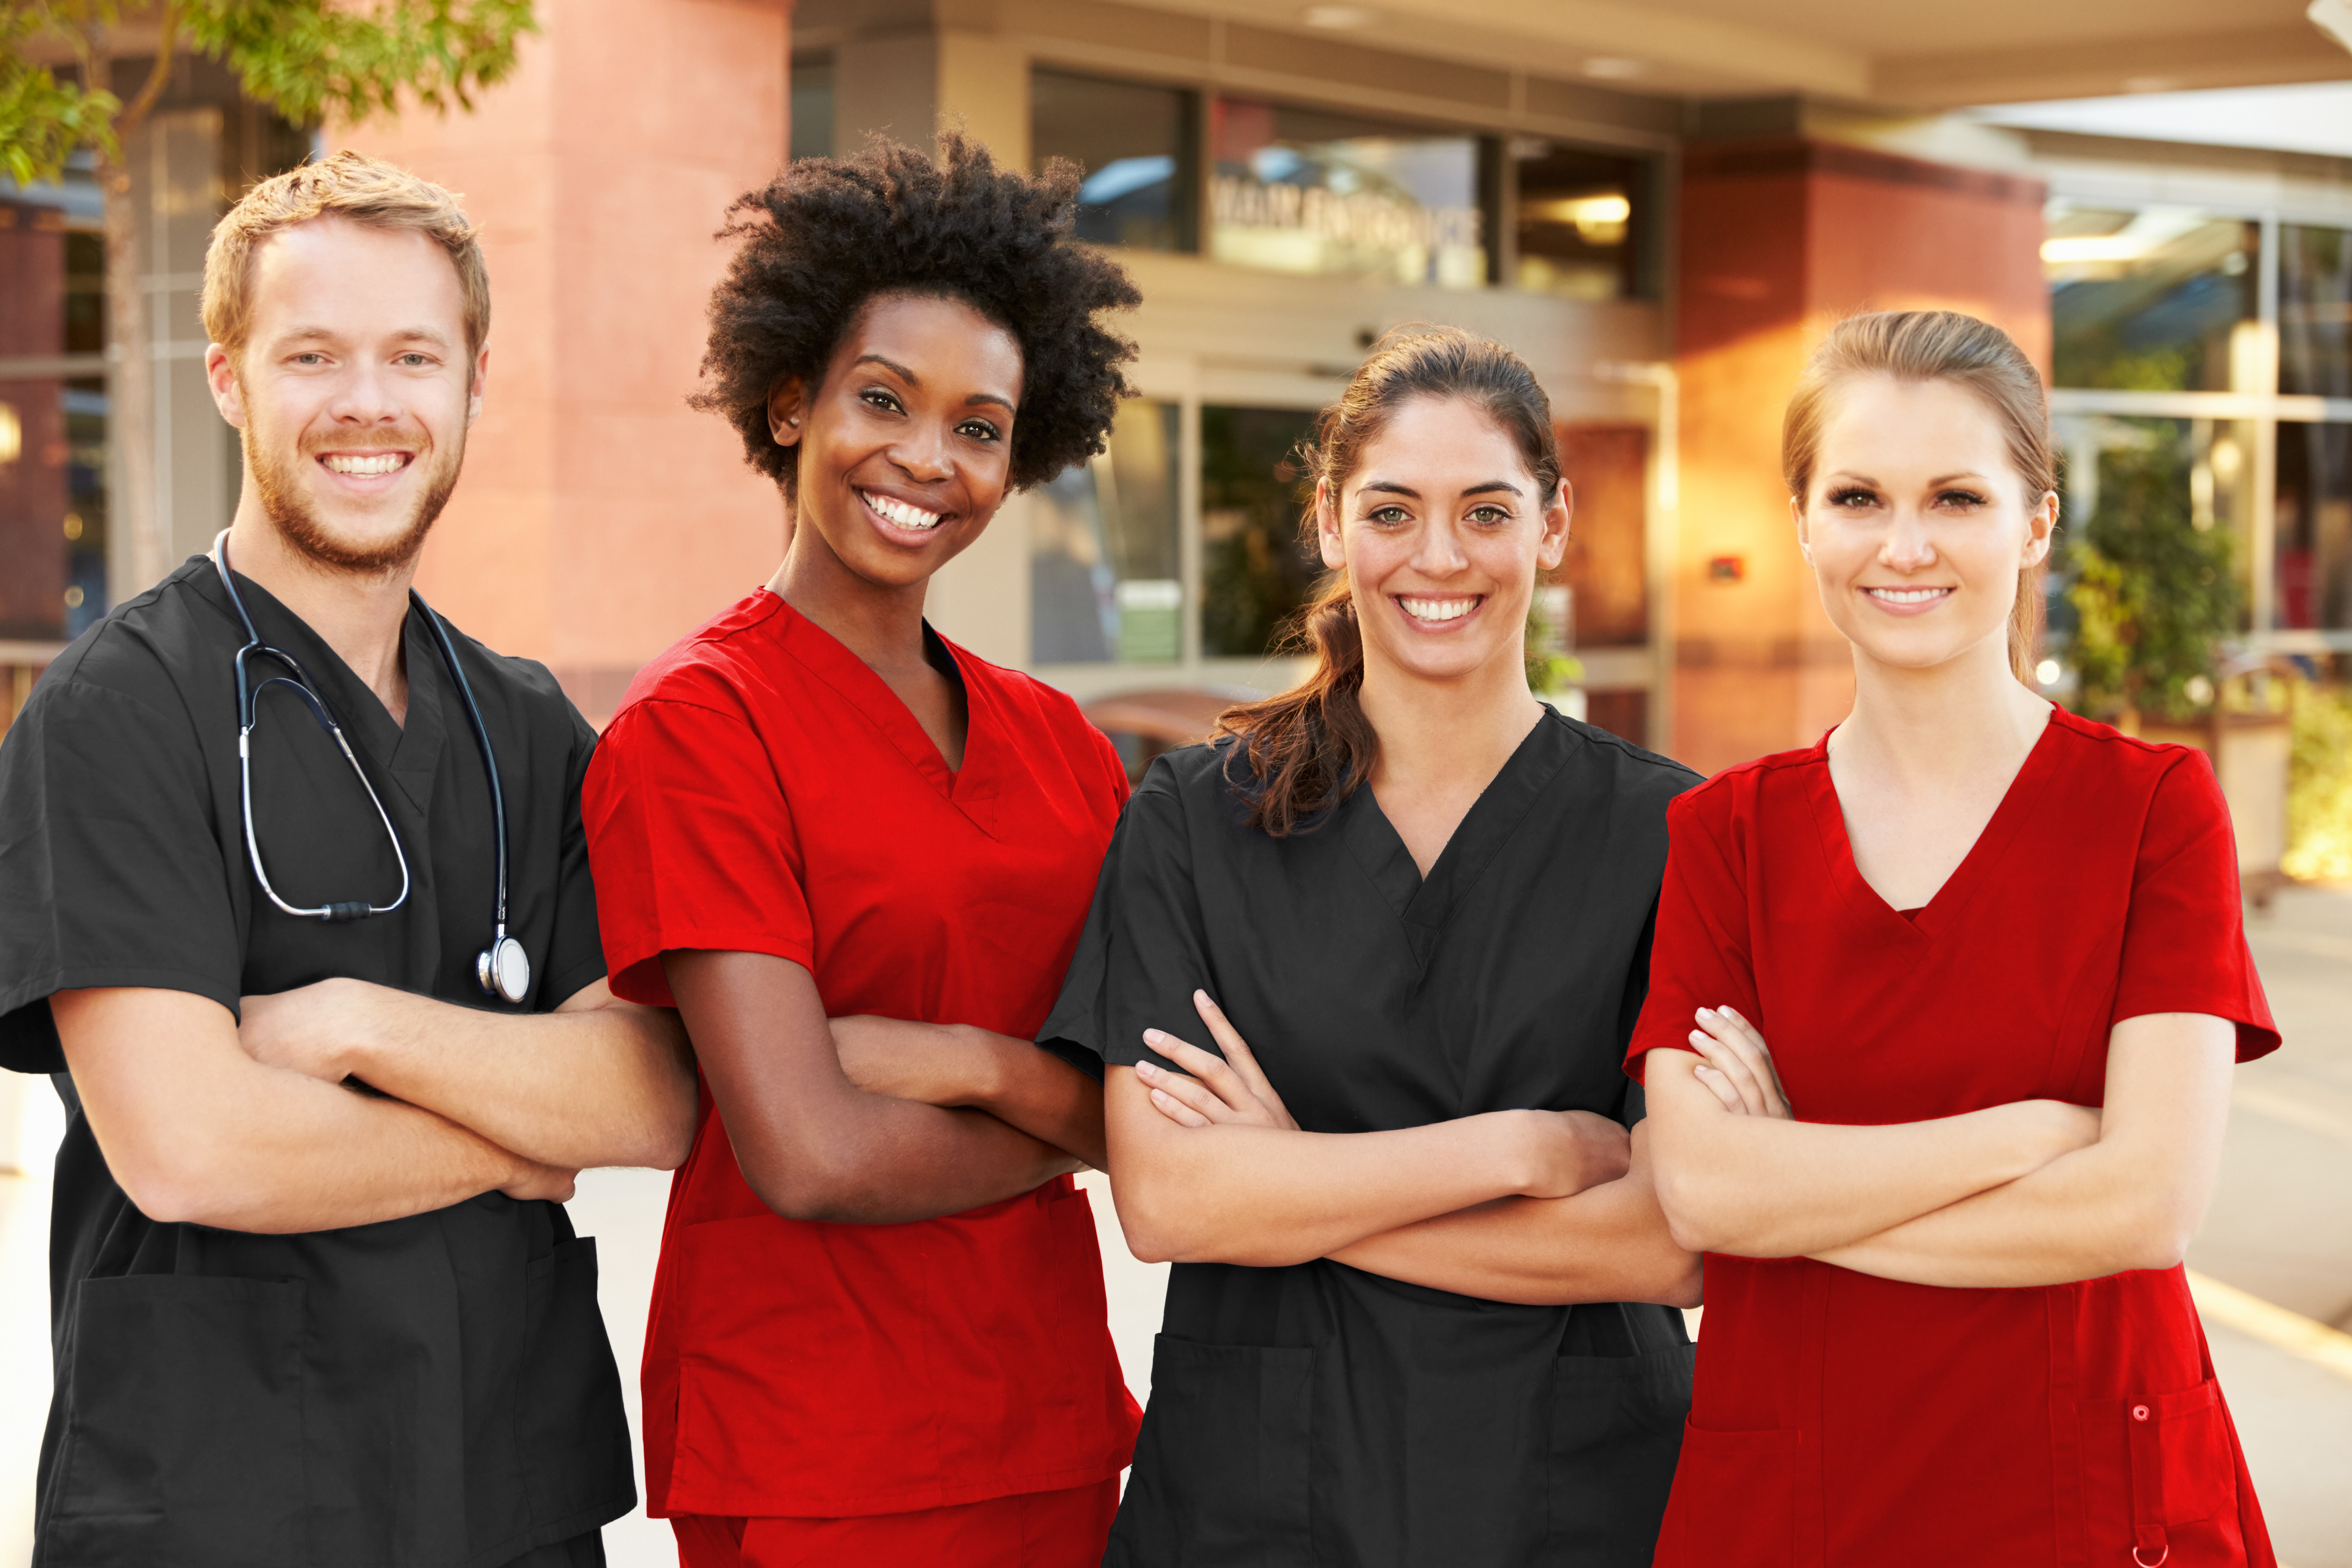 RN-BSN program online info session on May 18